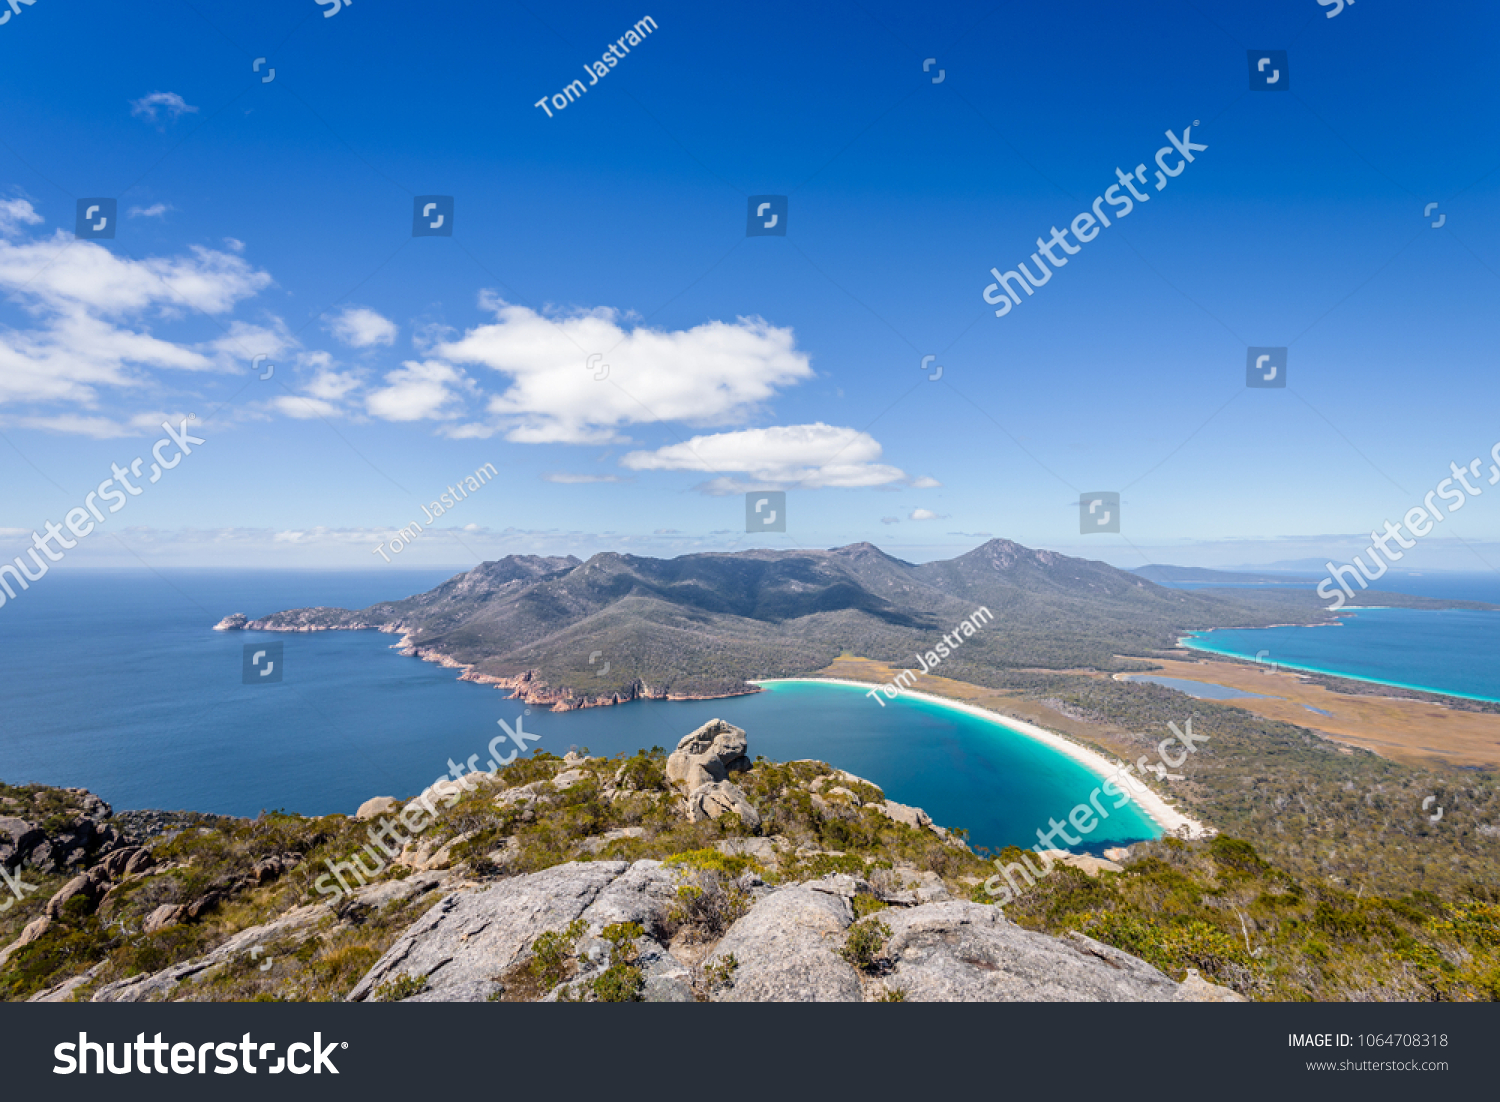 Relaxing amazing mountain viewpoint stunning view to Wineglass Bay sandy beach blue water and enjoyng warm sunny blue sky after hiking on top, Freycinet National Park, Mount Amos, Tasmania, Australia #1064708318